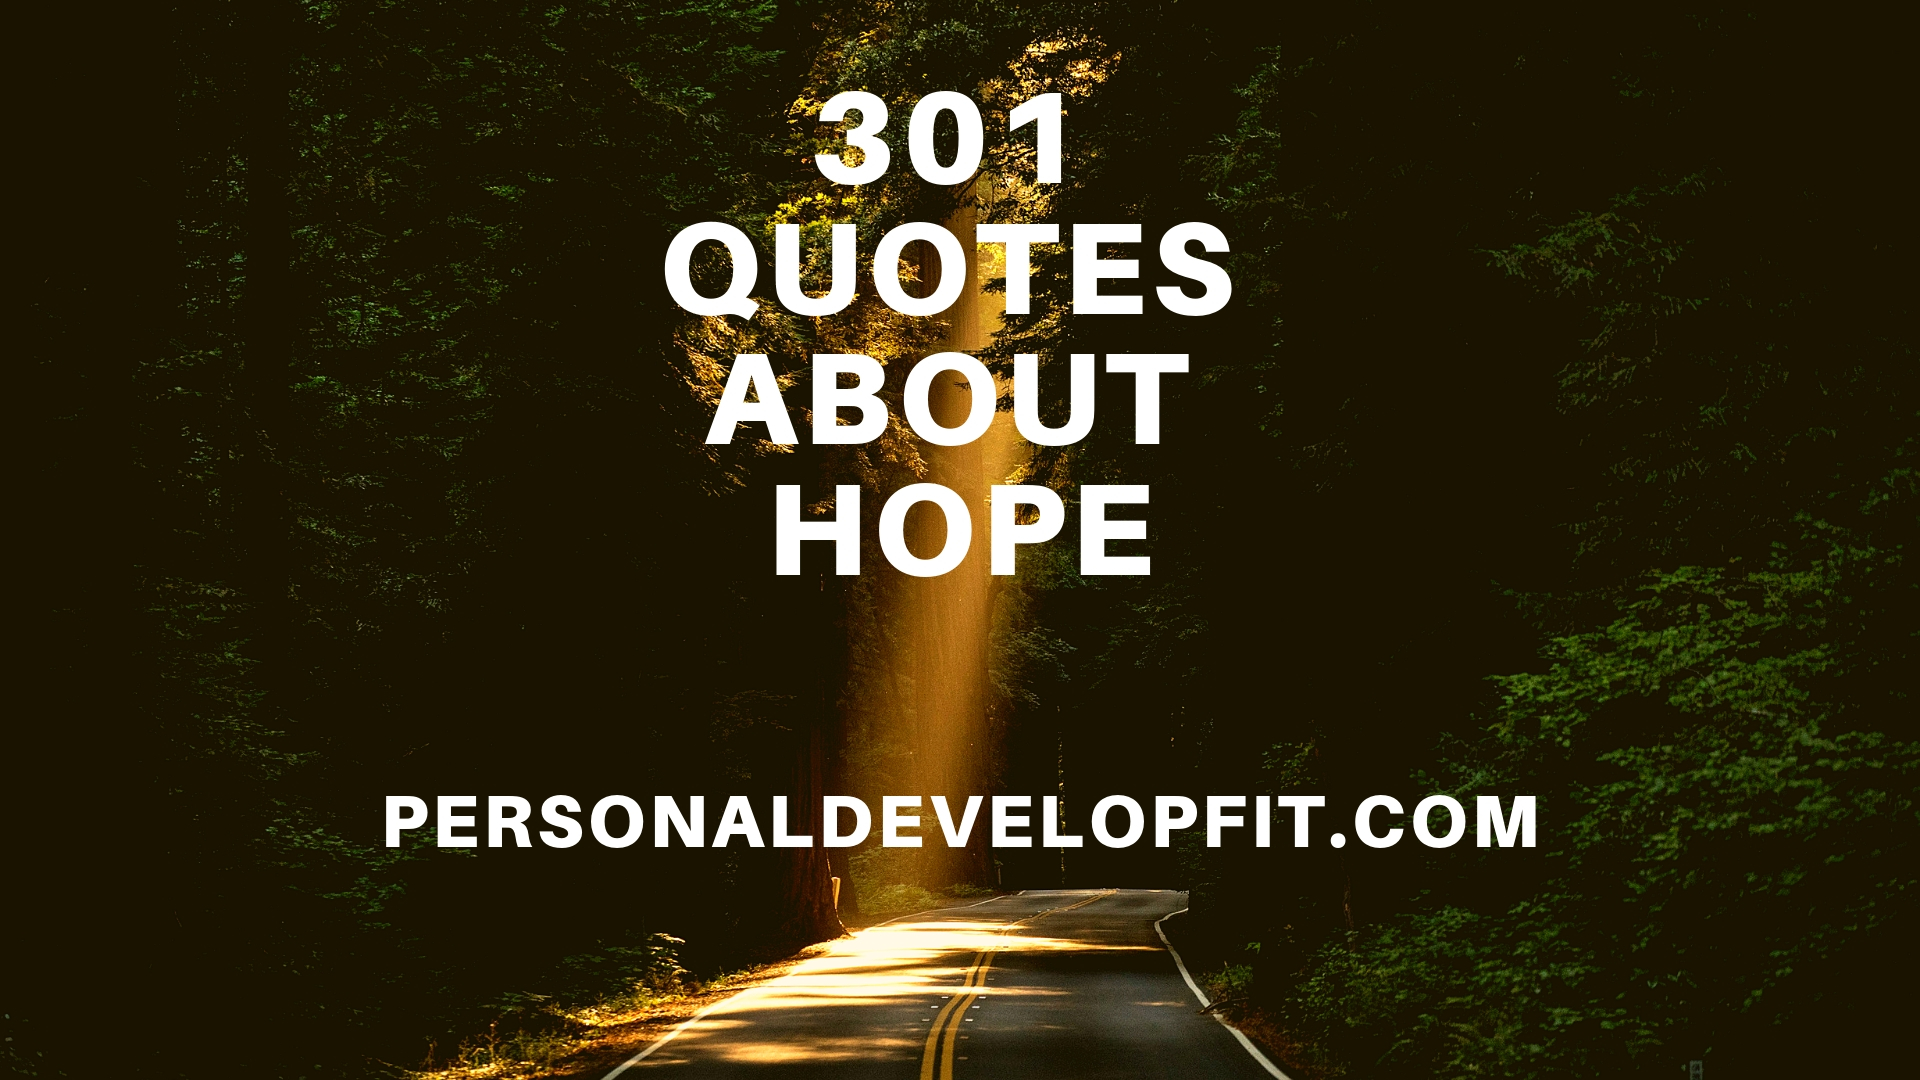 301 Quotes About Hope (Hope Quotes